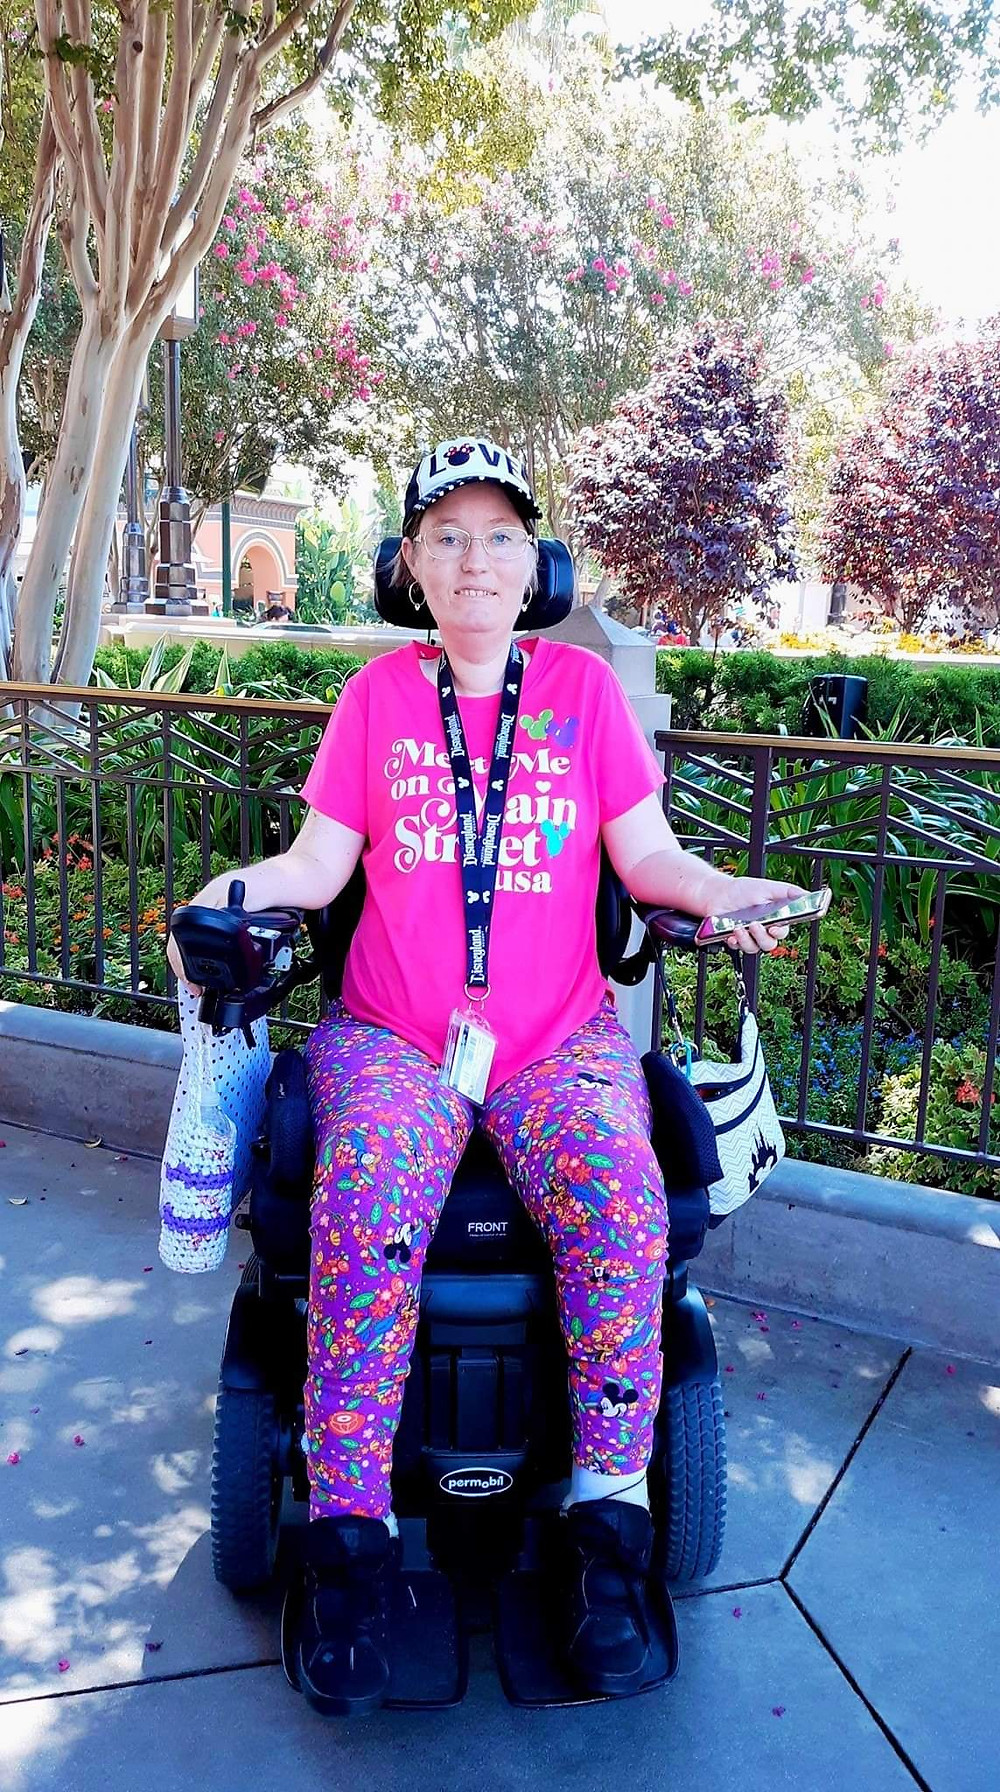 woman in a power wheelchair wearing a pink shirt. Disneyland trees and hedges behind her